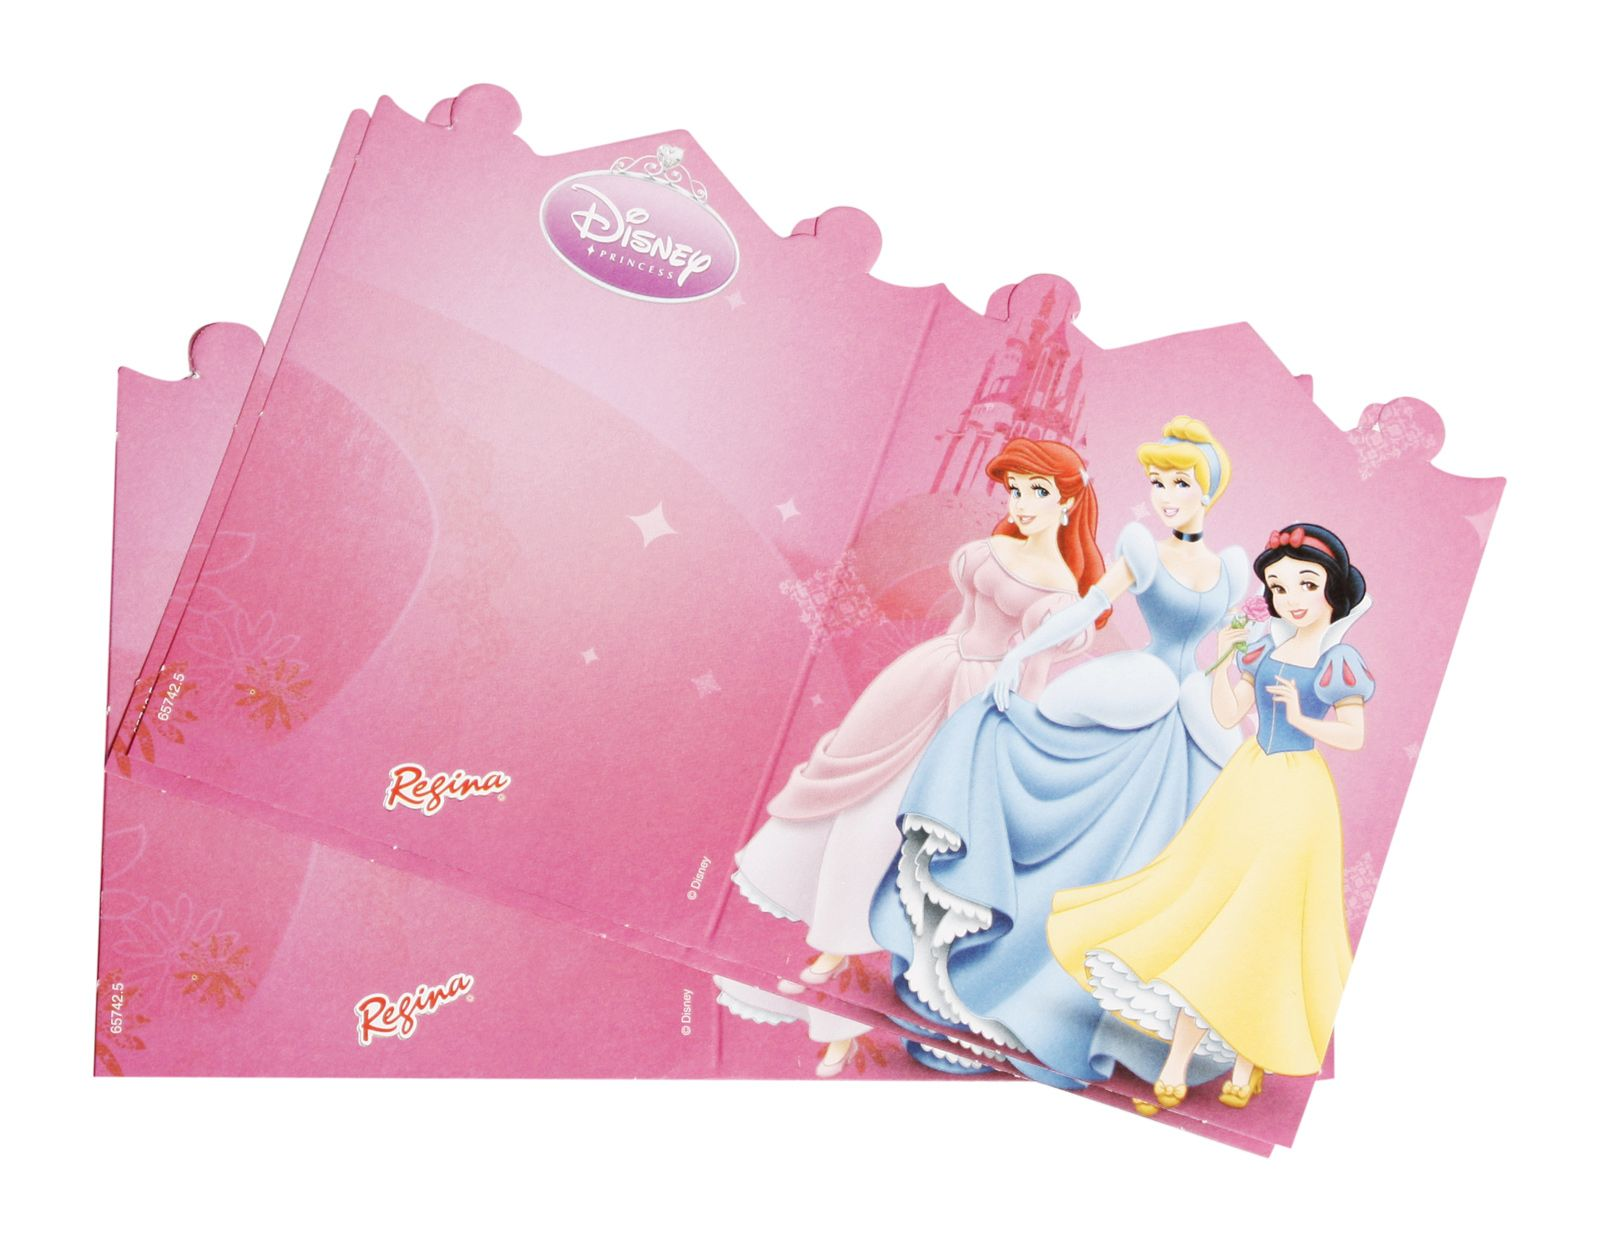 Disney Princess Products images